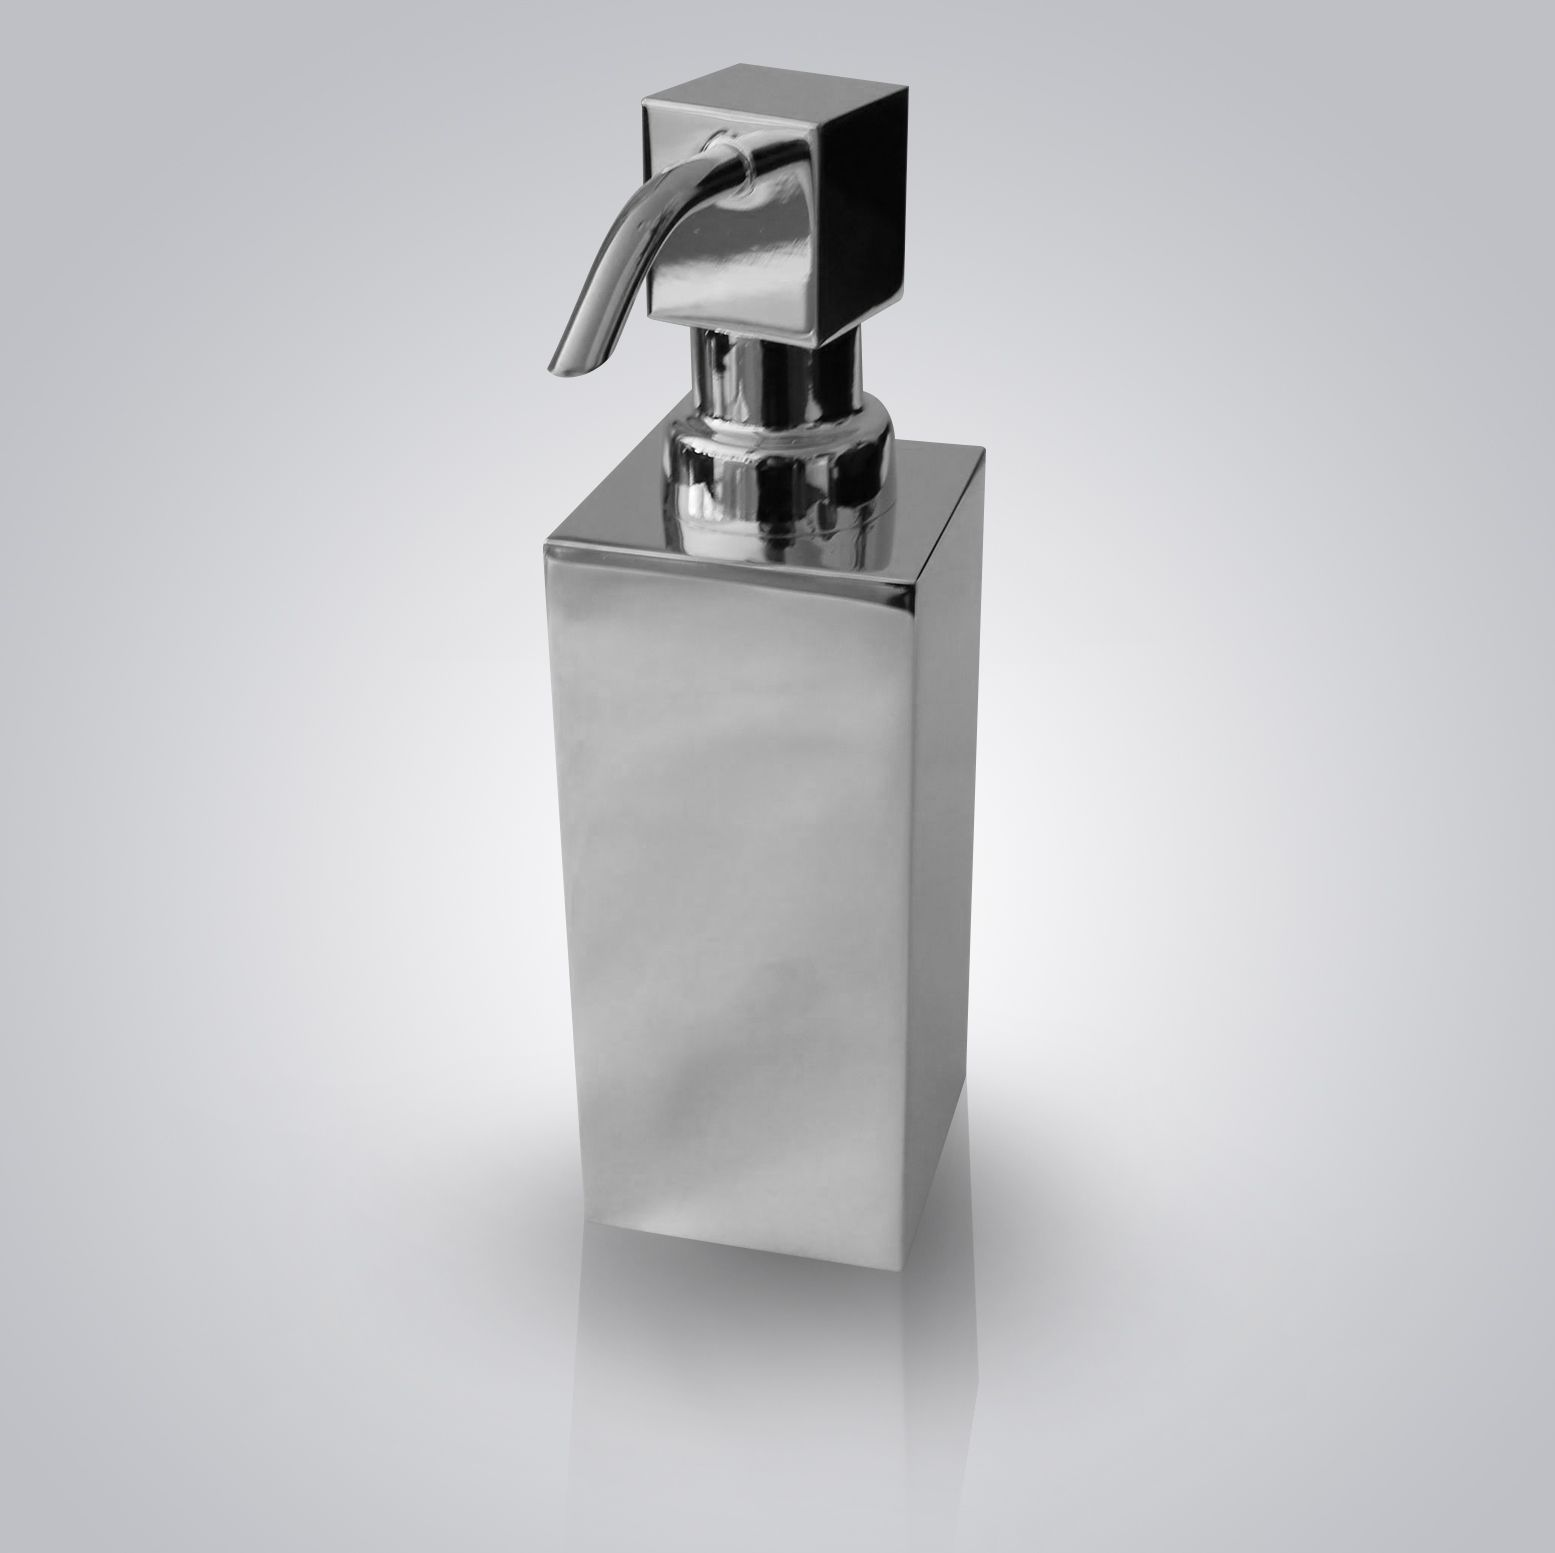 Bathroom Accessories Online Australia Soap Dispenser Chrome Order One Now At 179 00 Free Shipping